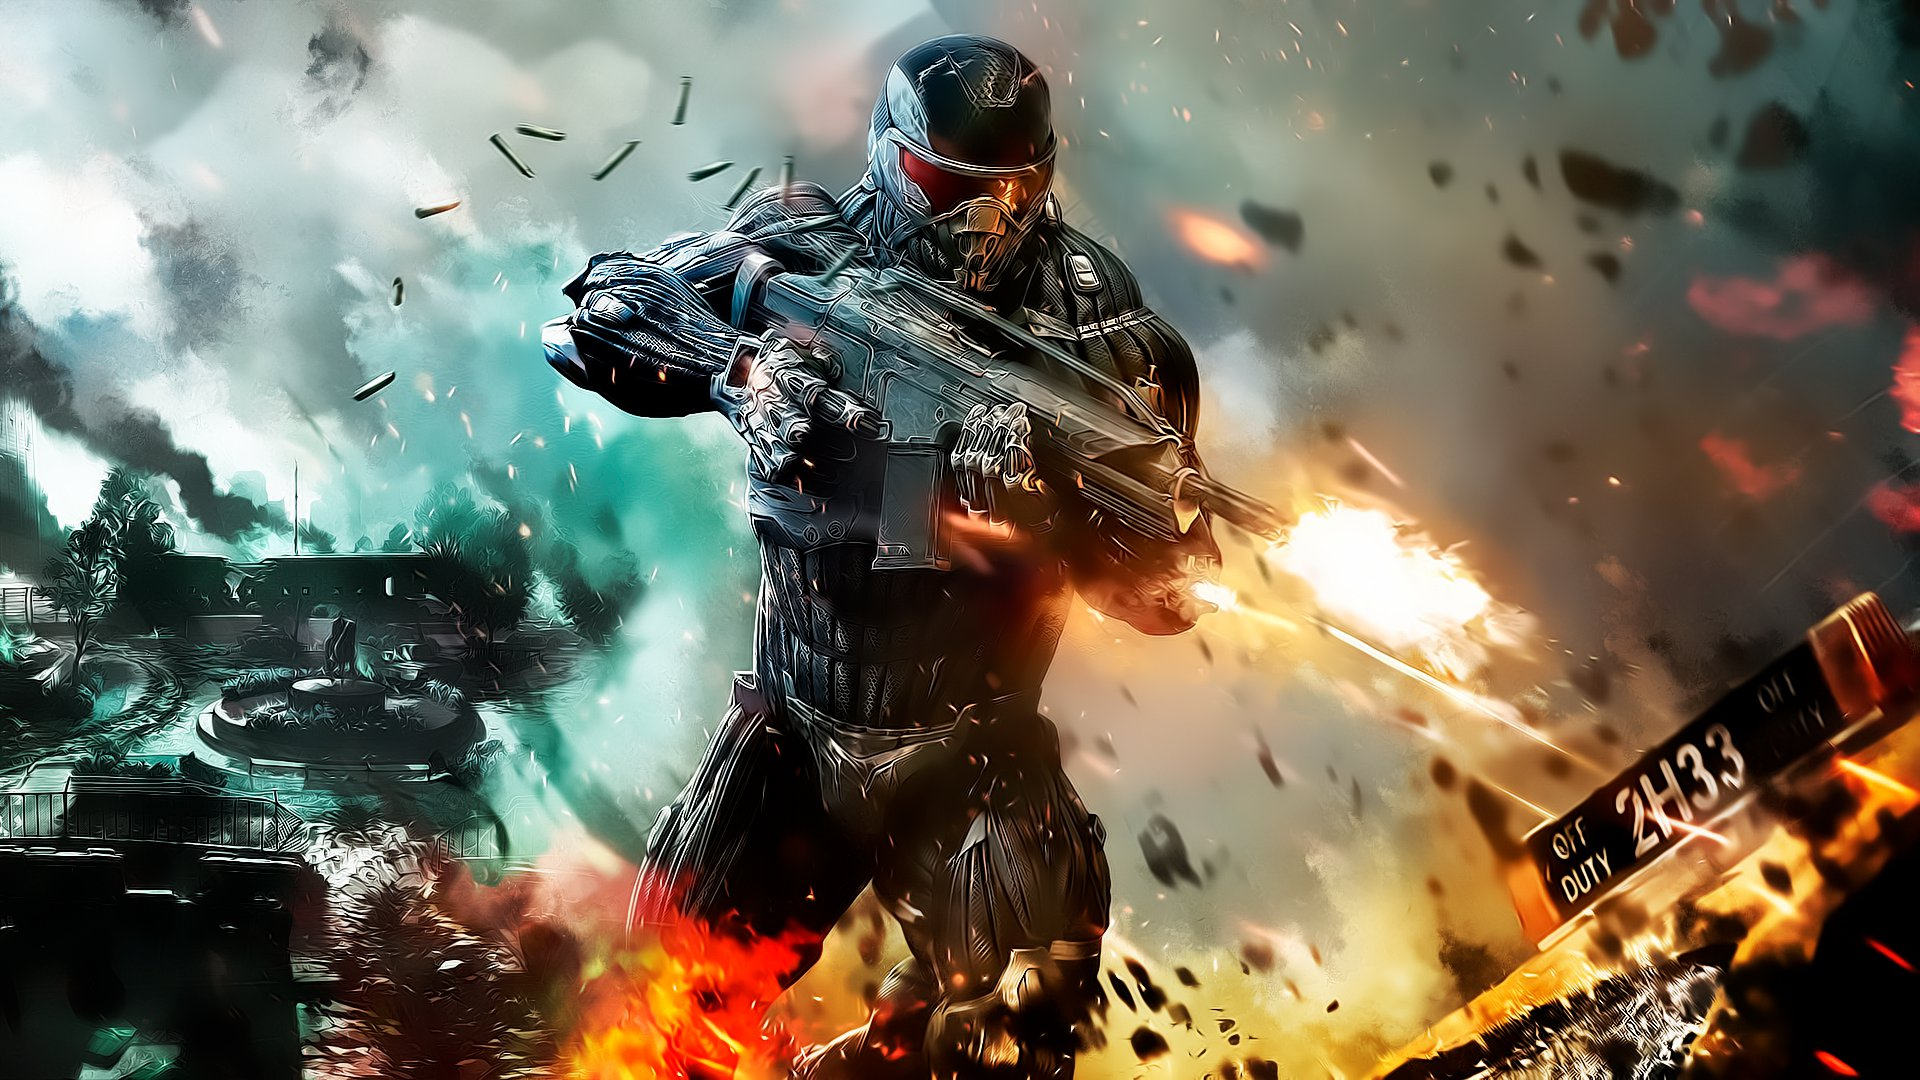 crysis images